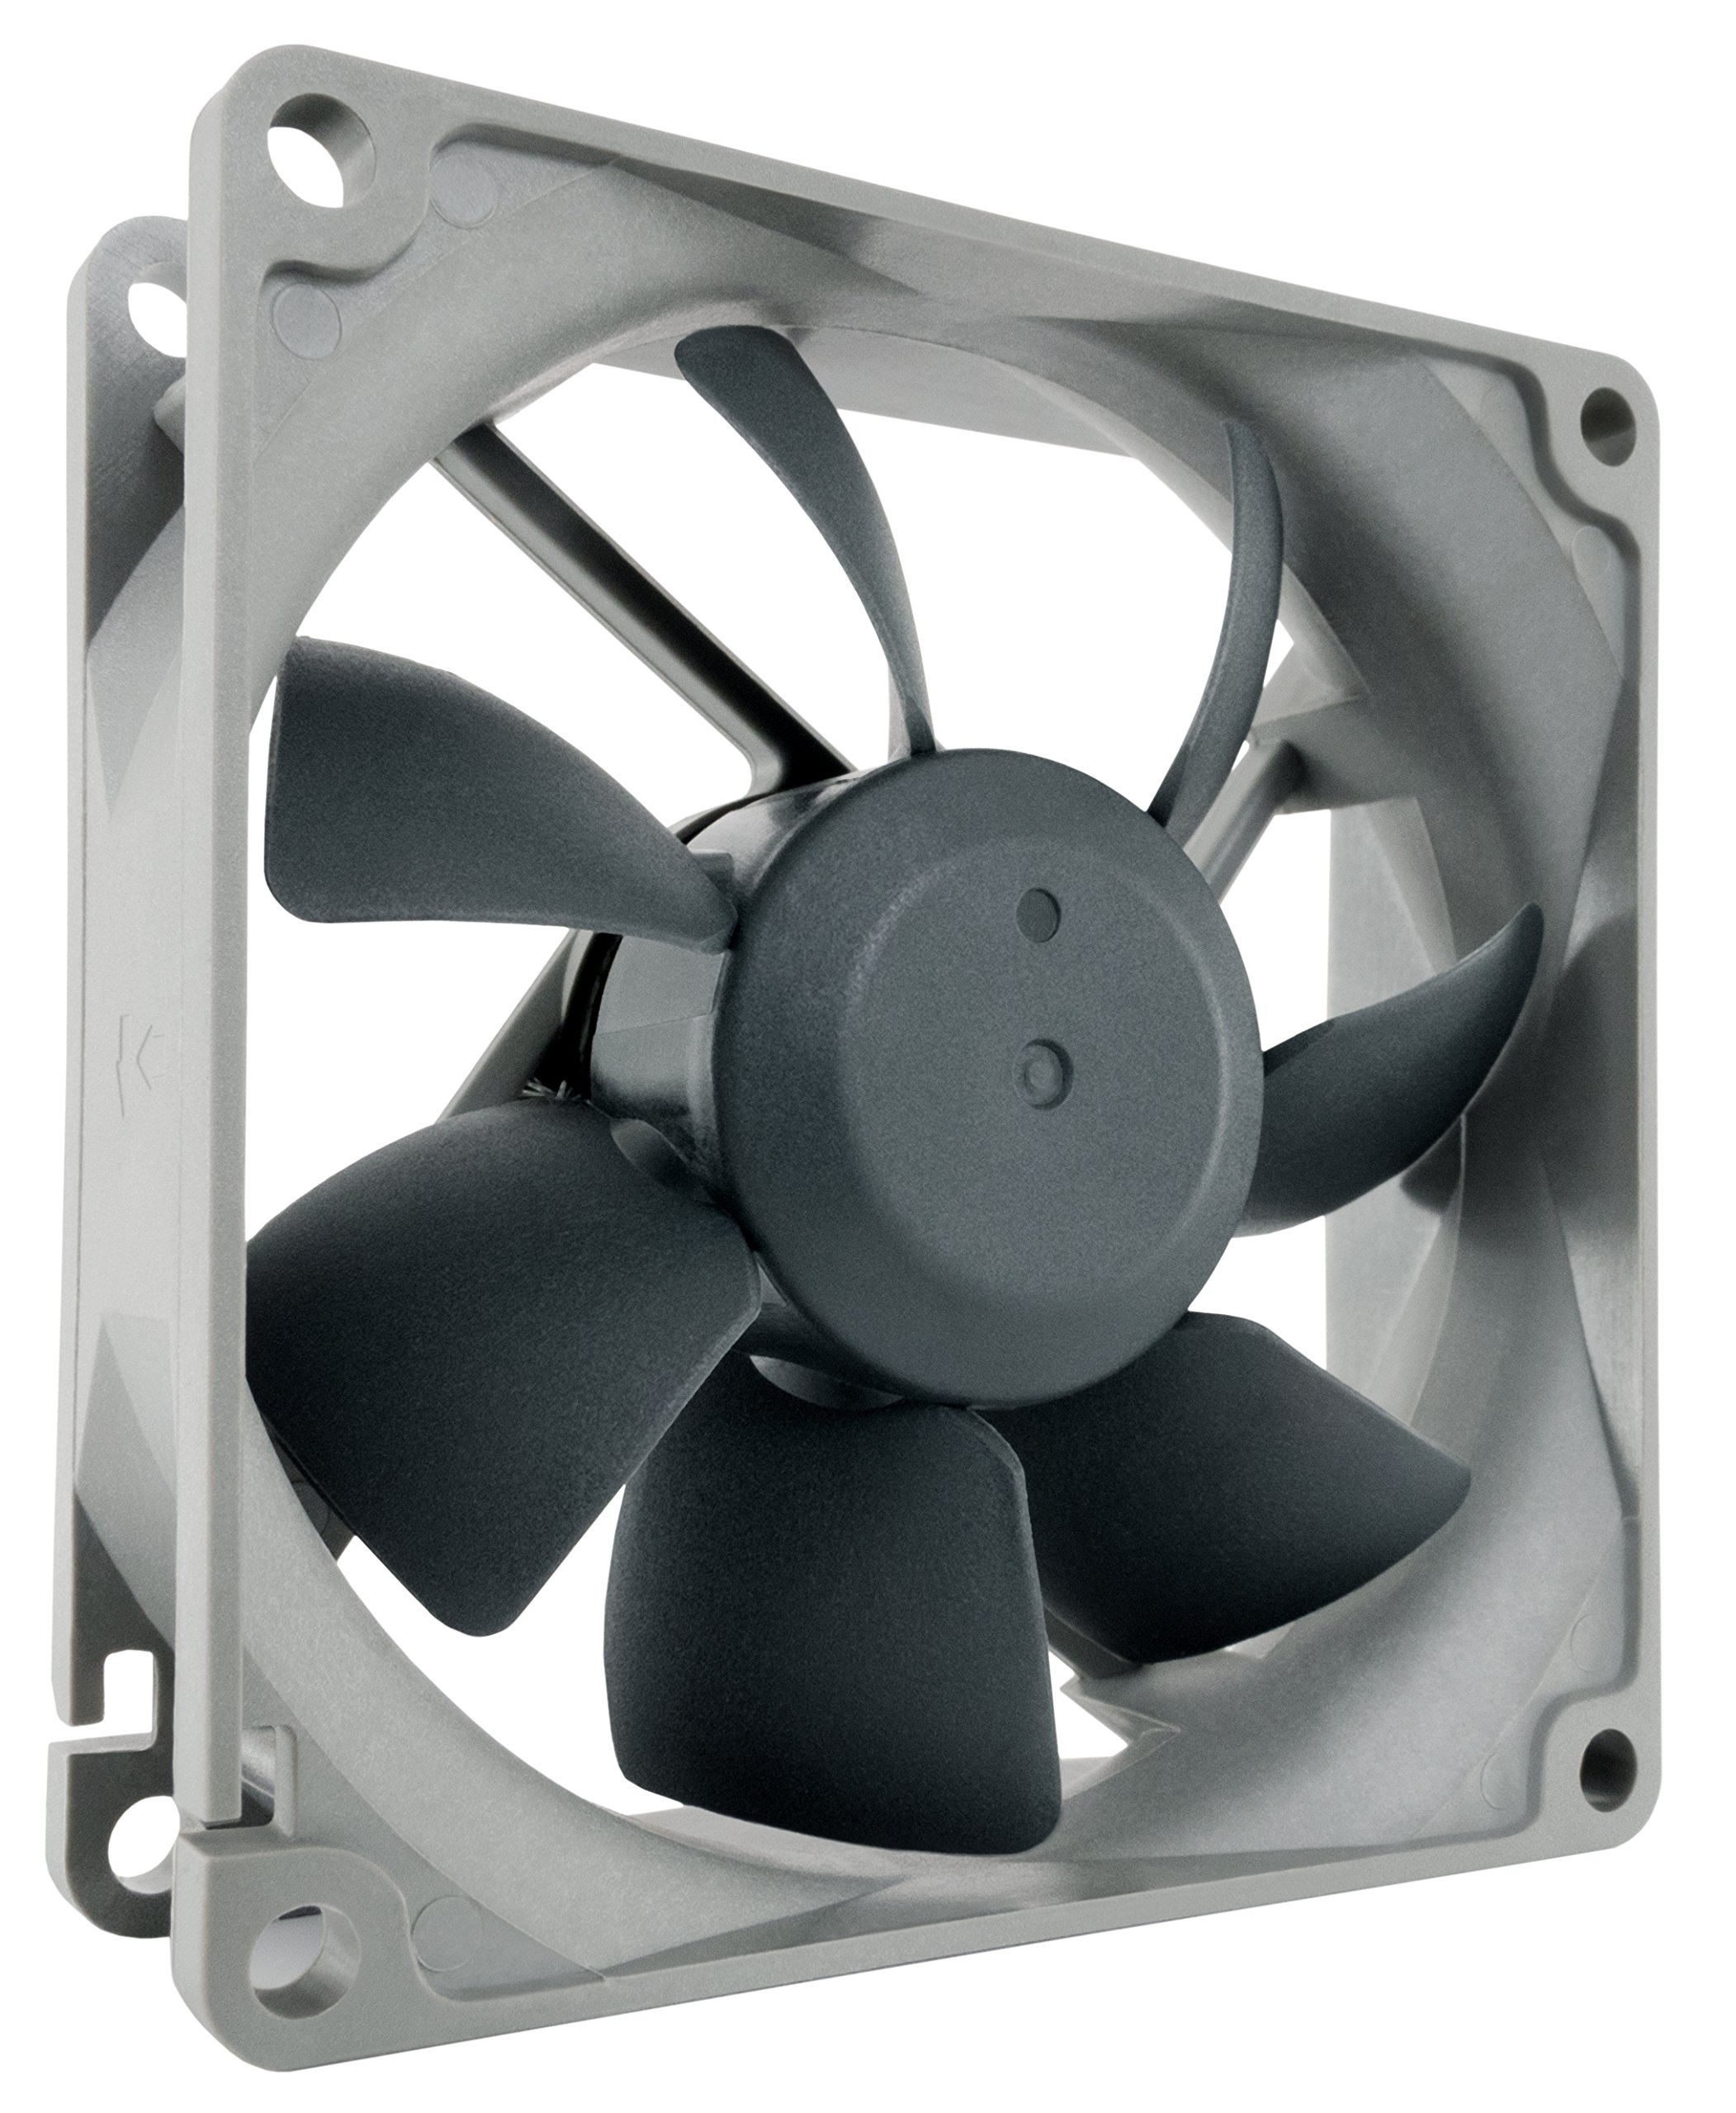 Noctua Nf-r8 Redux-1800 Pwm 4-pin High Performance Coolin...